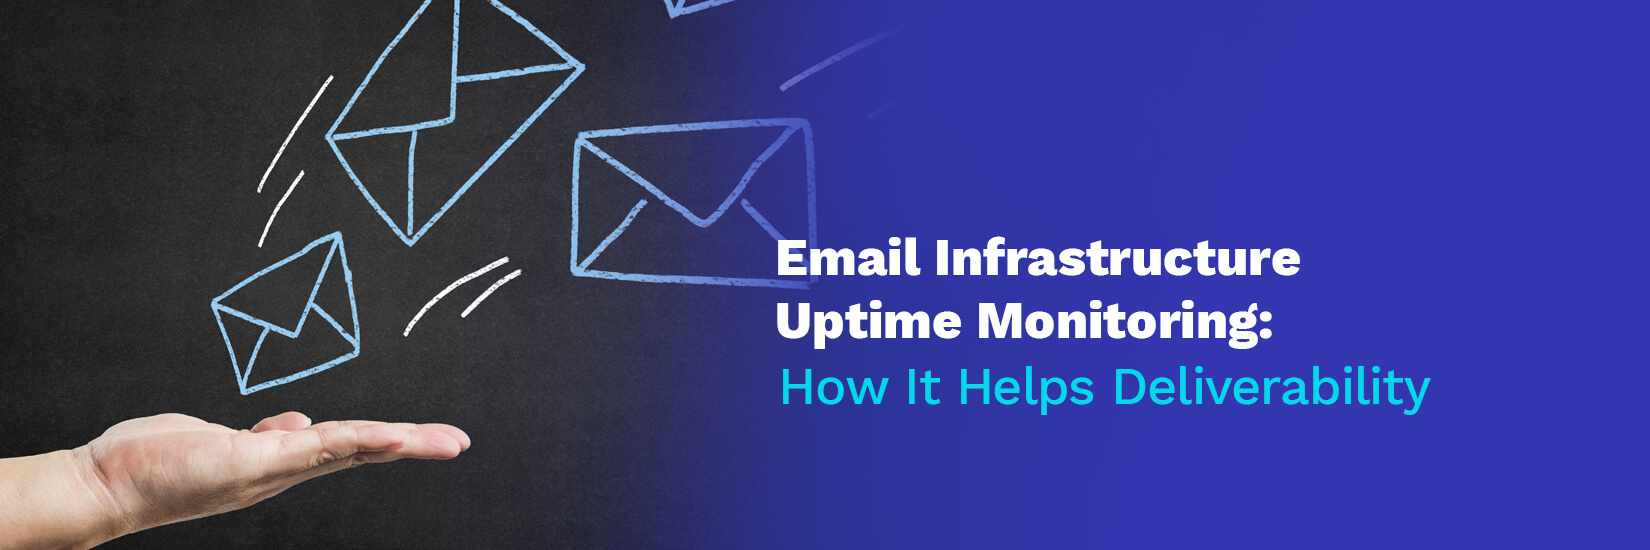 Email Infrastructure Uptime Monitoring: How It Helps Deliverability